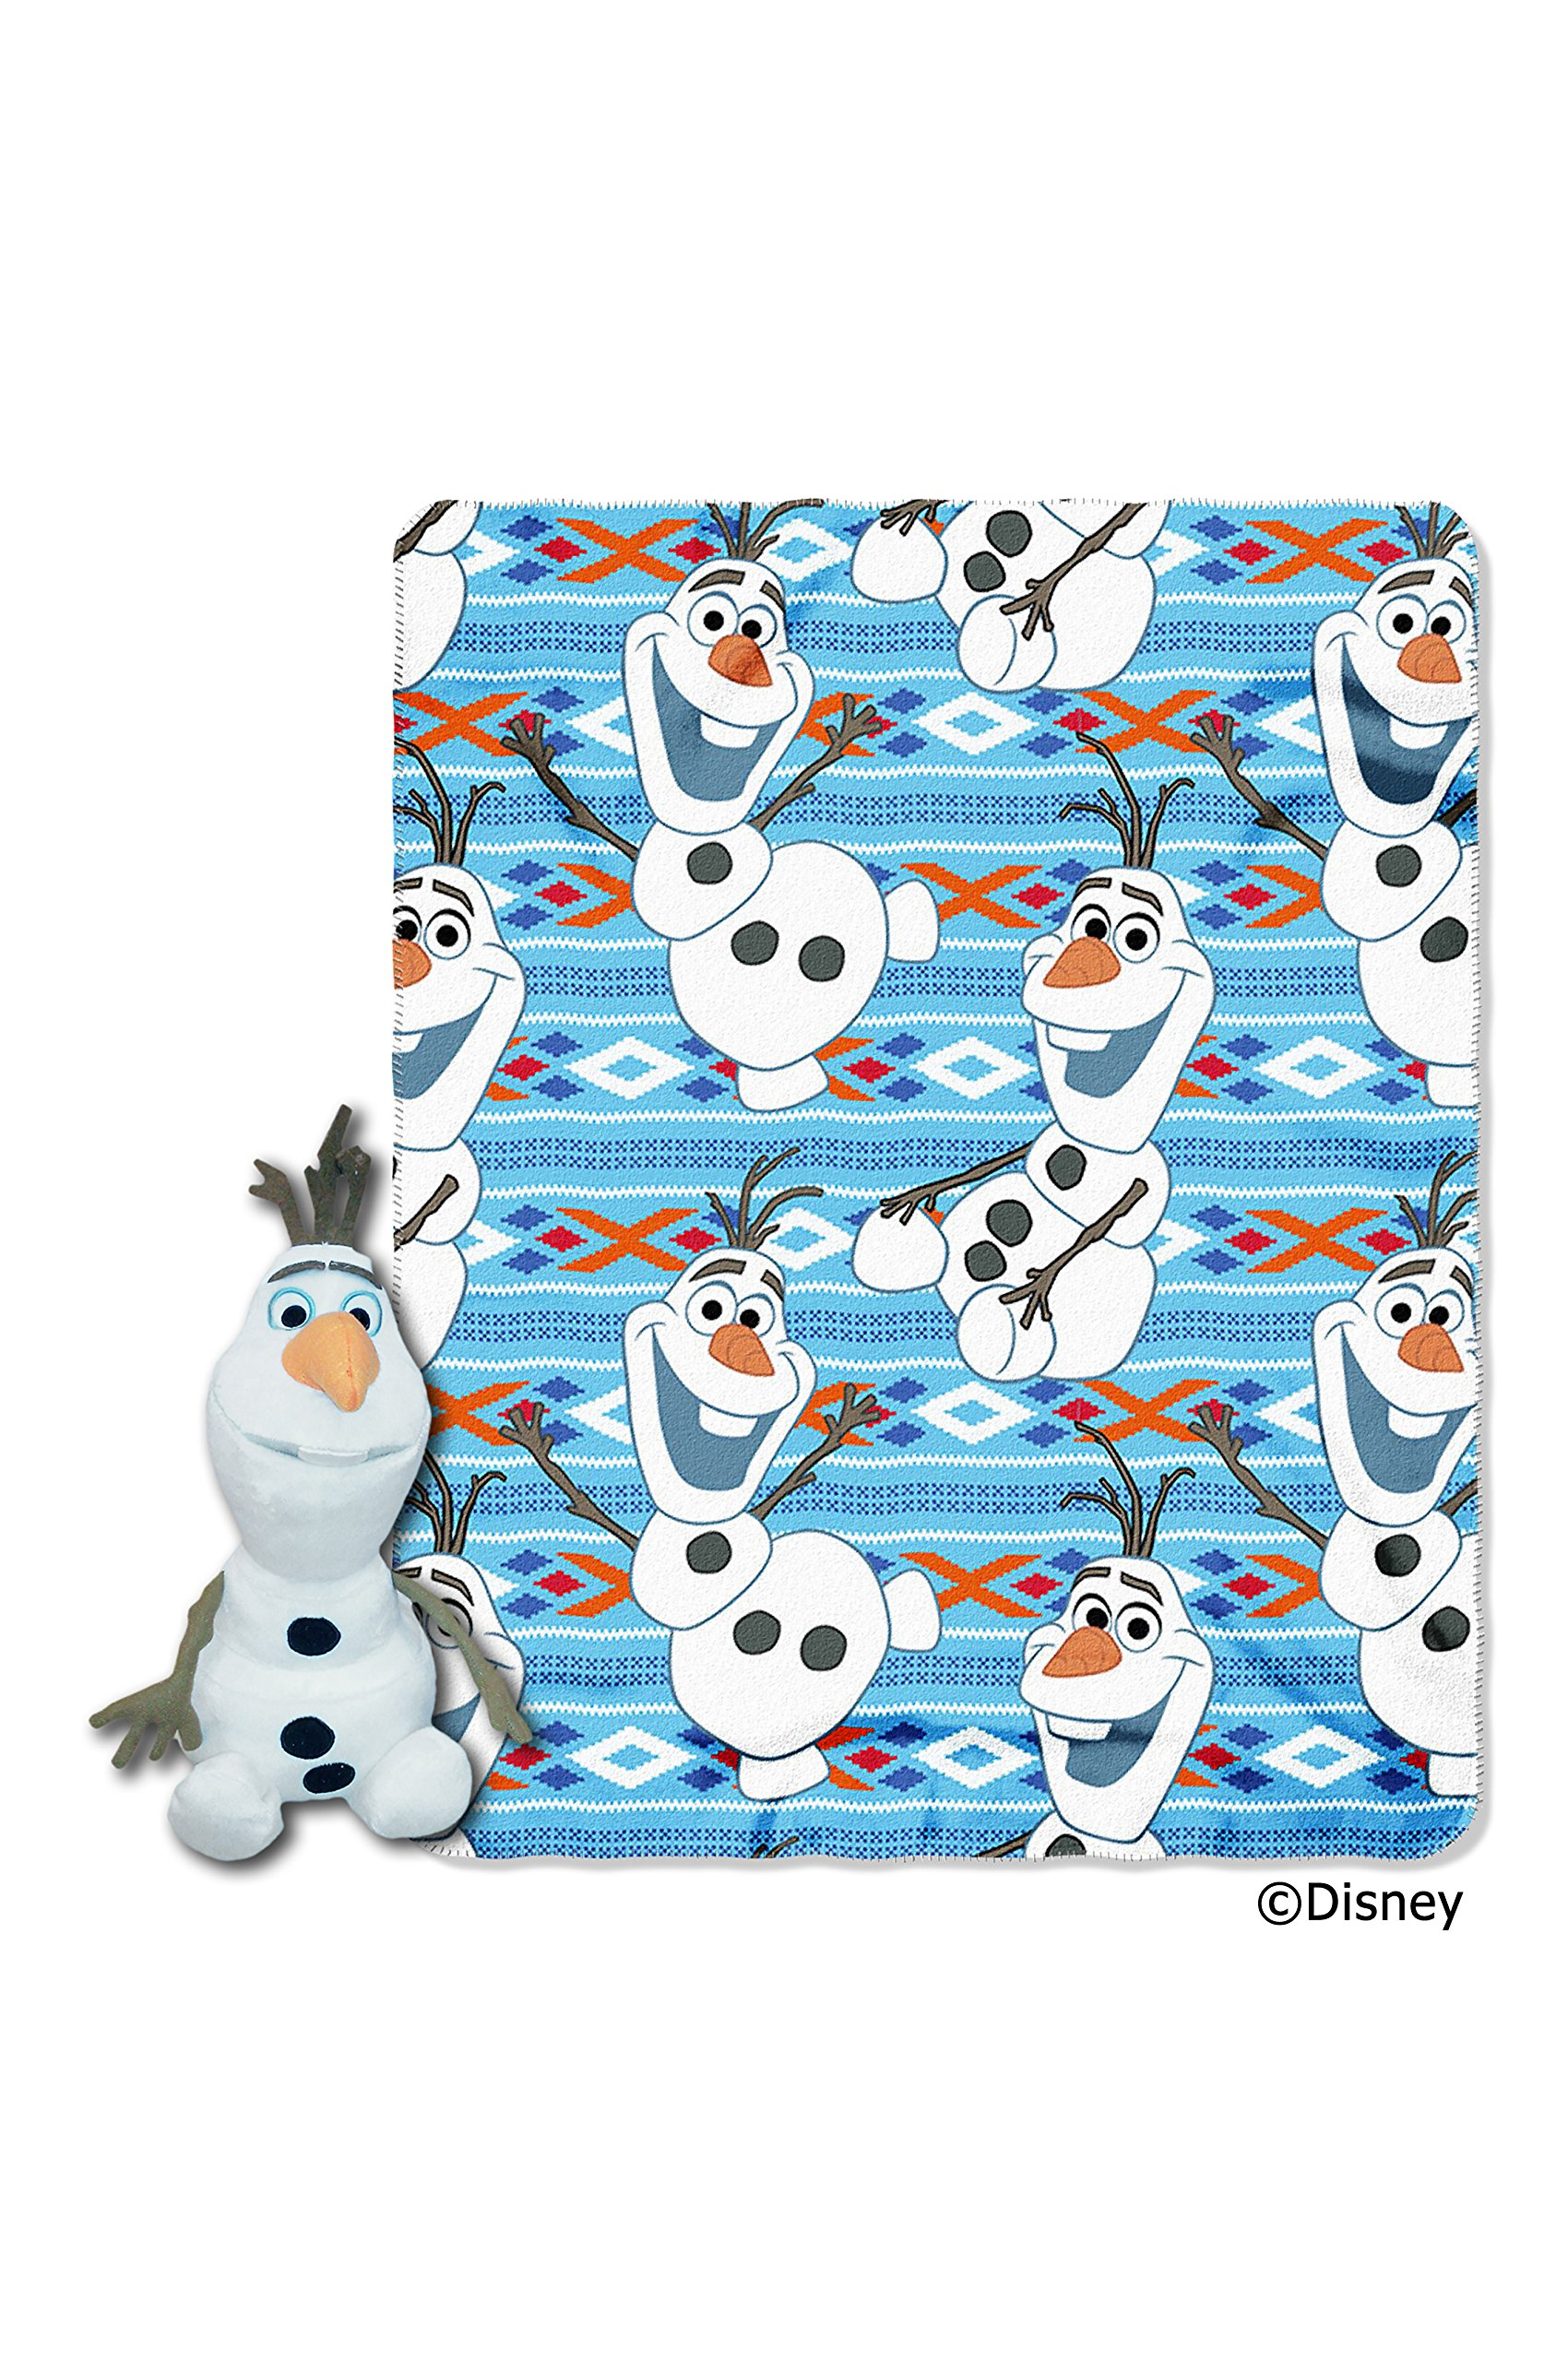 Disney's Frozen, ''Olaf Dance'' Character Pillow and Fleece Throw Blanket Set, 40'' x 50'', Multi Color by Disney